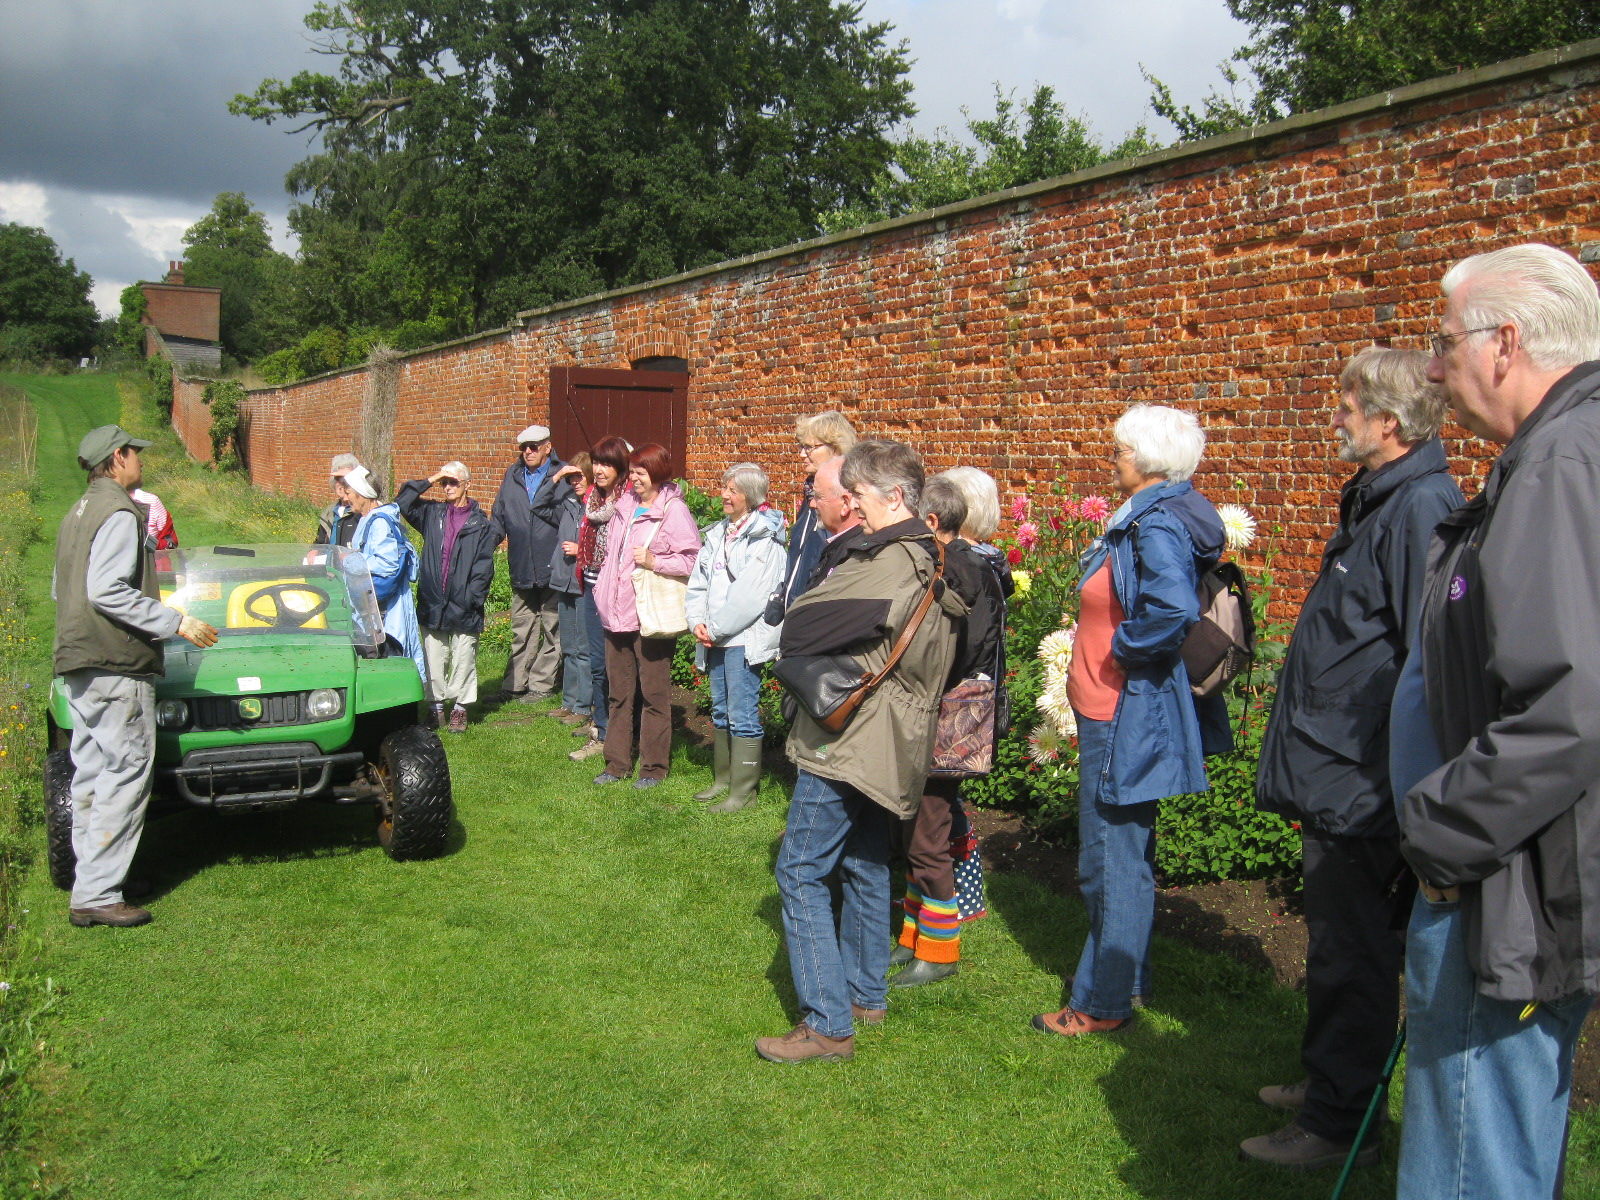 Learning about Ickworth walled garden